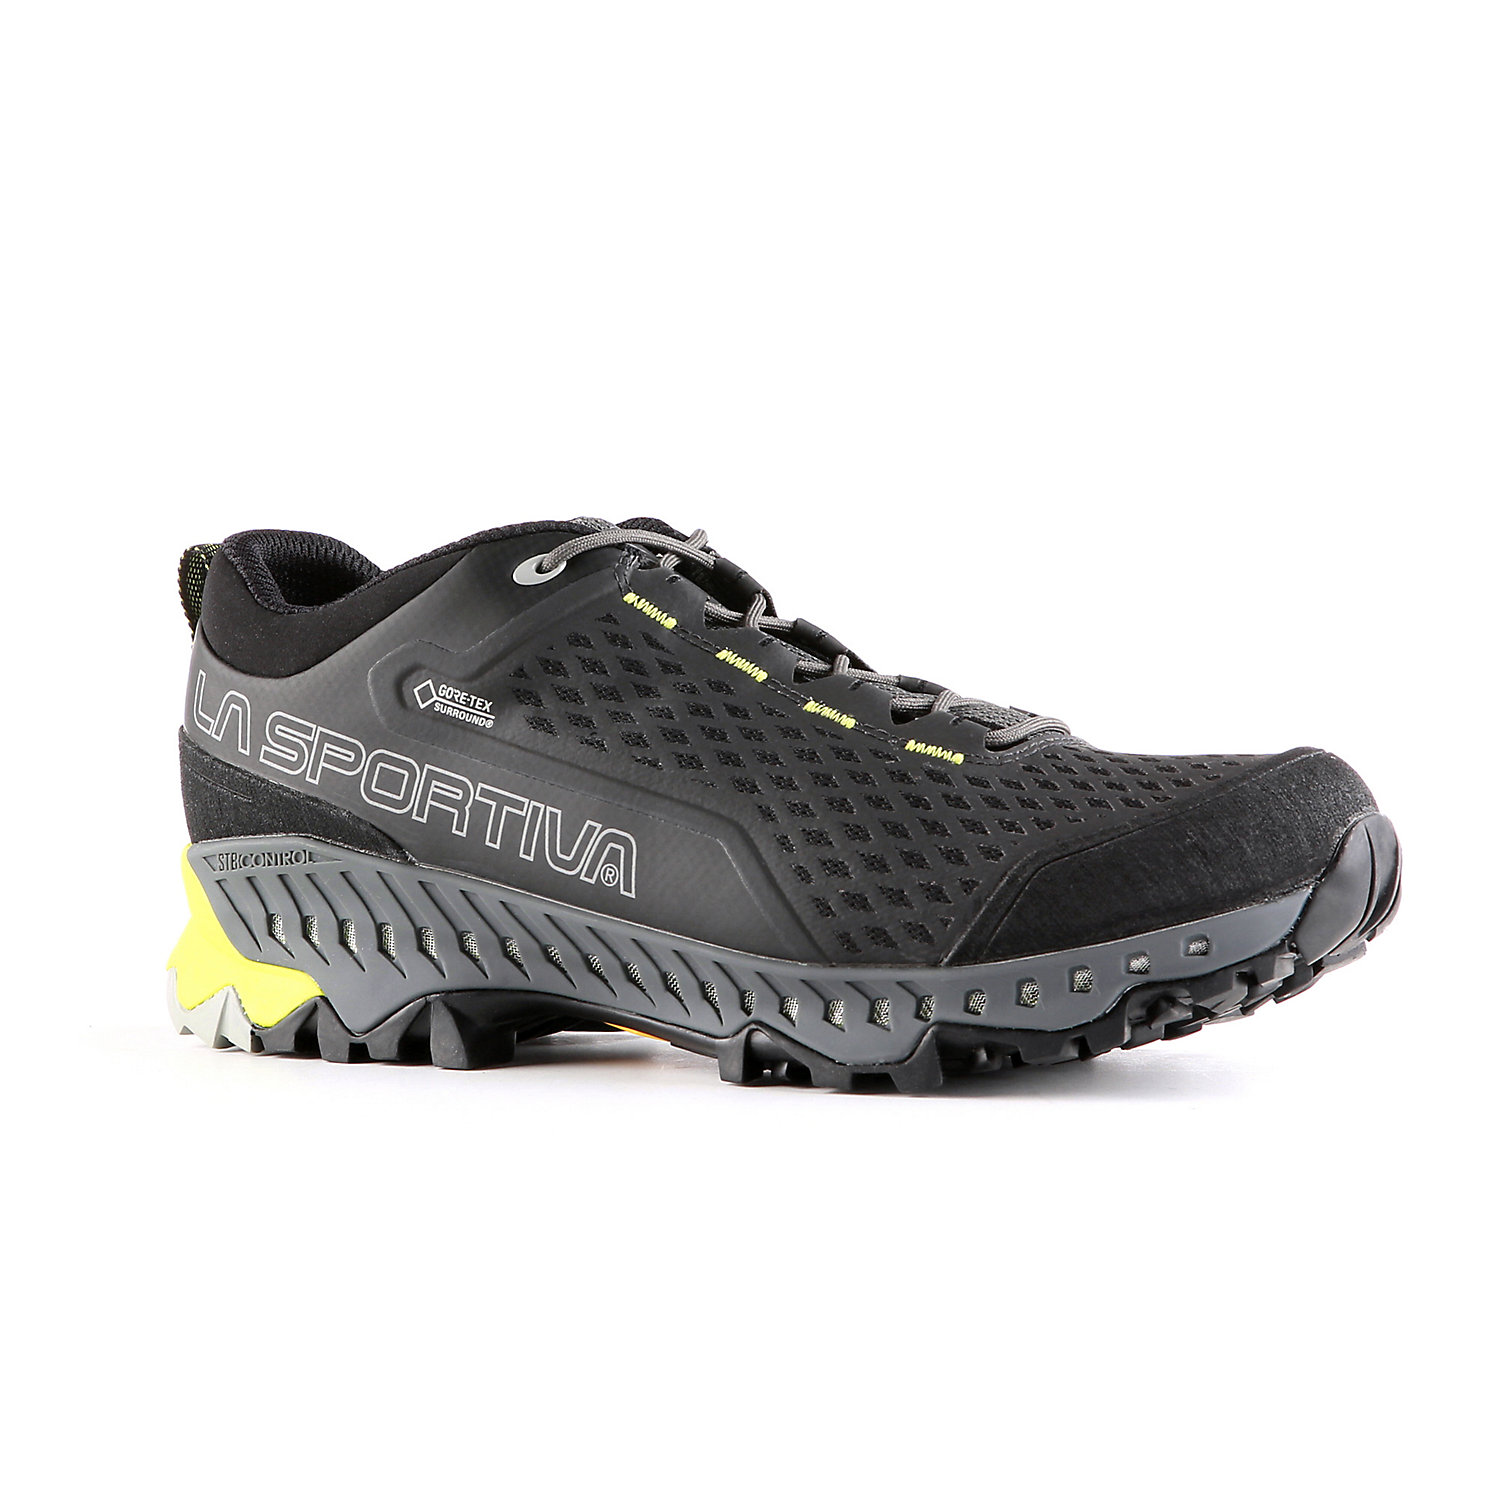 5b54913c8e2 La Sportiva Men's Spire GTX Hiking Shoe